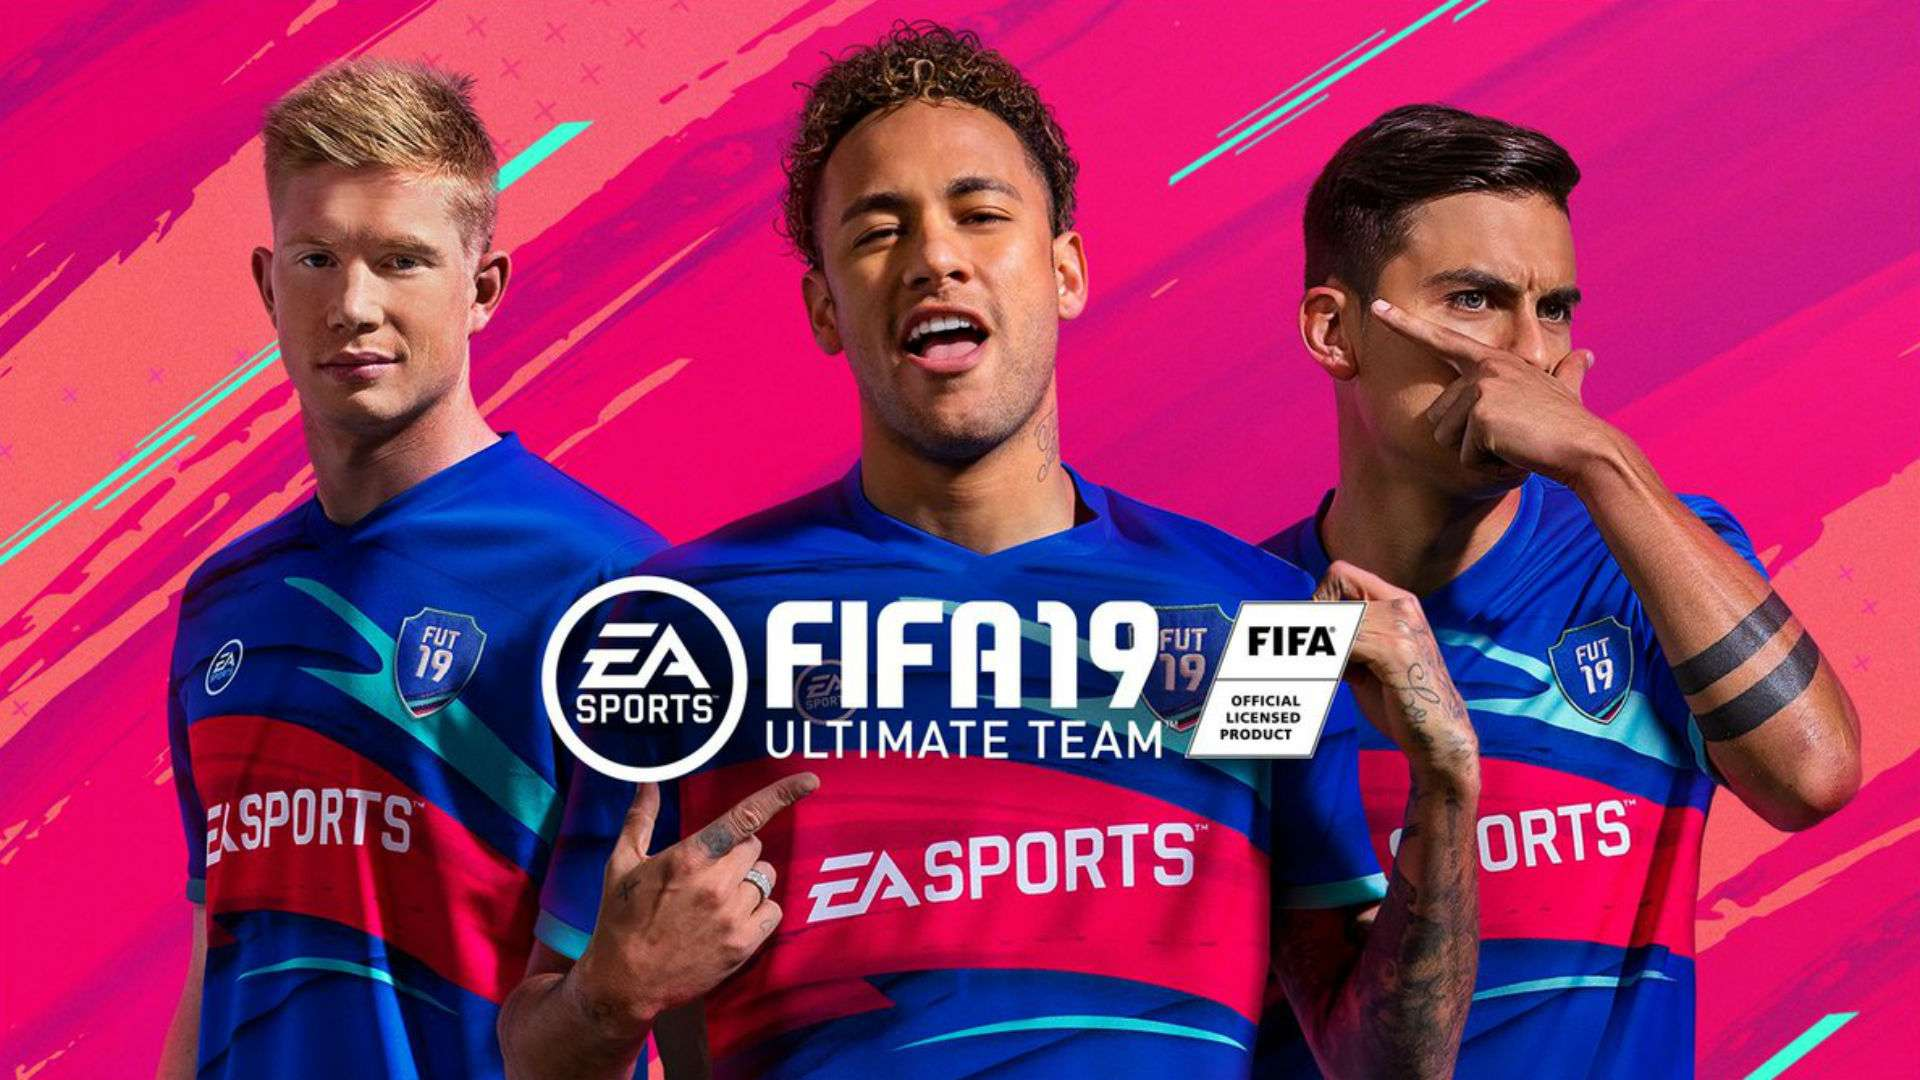 Fifa 19 Ultimate Team Tipps